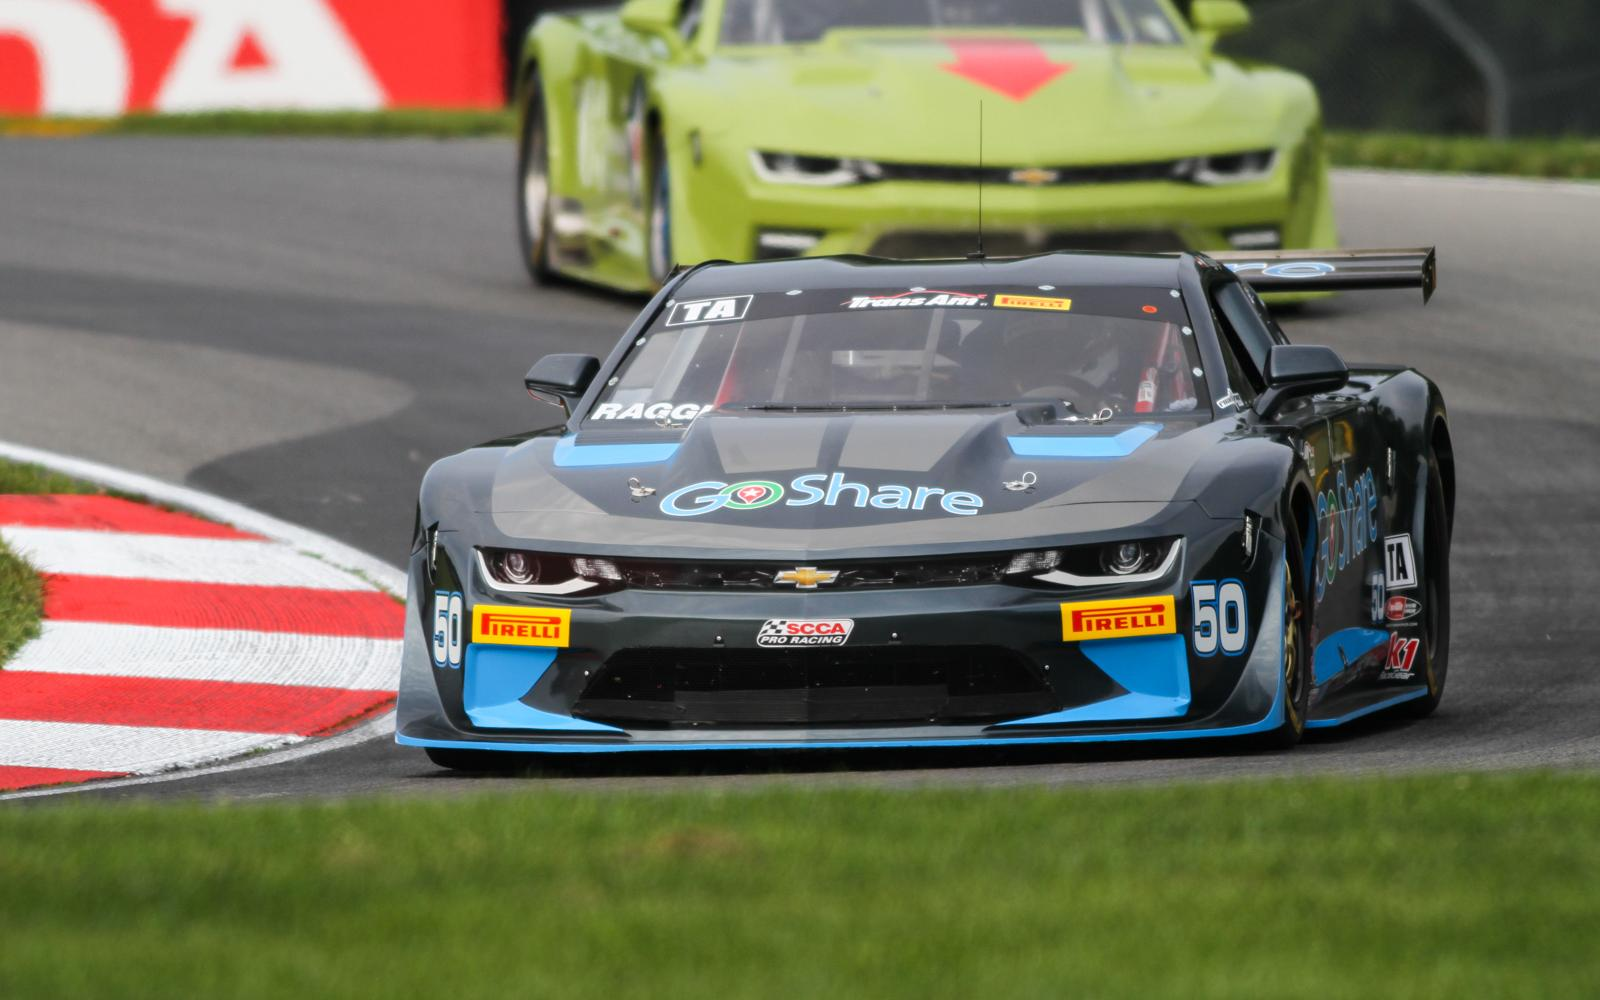 Ragginger and Lagasse lead opening Trans Am practice at Mid-Ohio